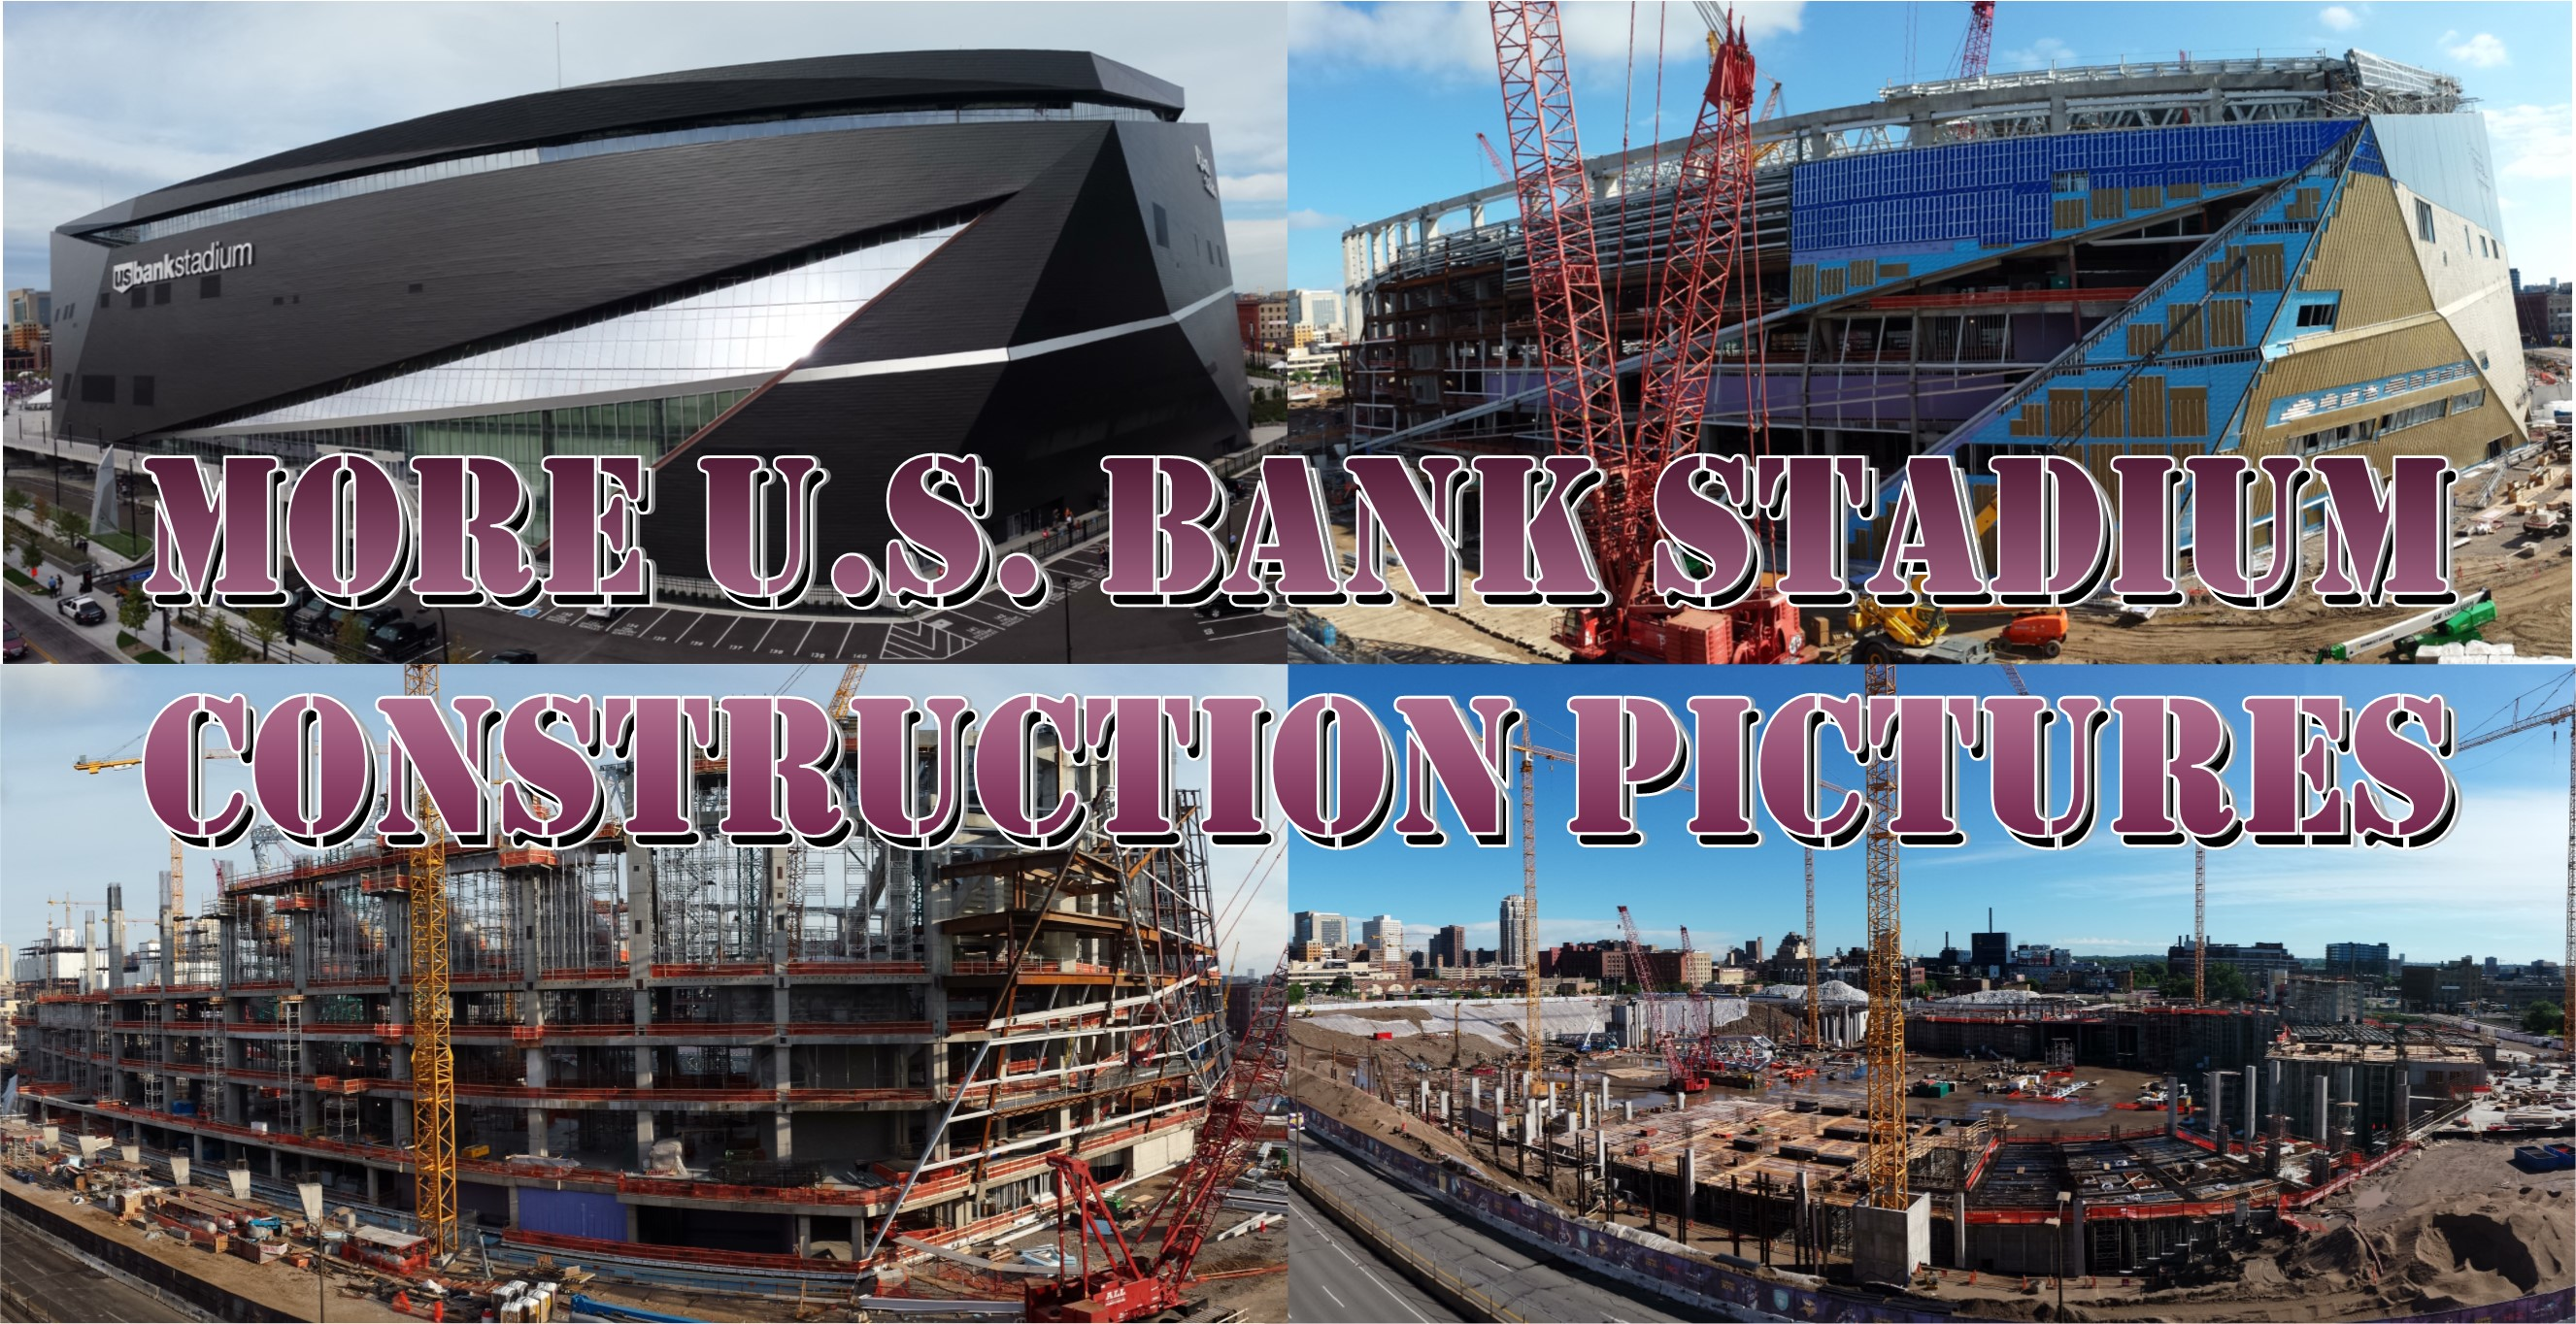 u-s-bank-stadium-construction-pictures